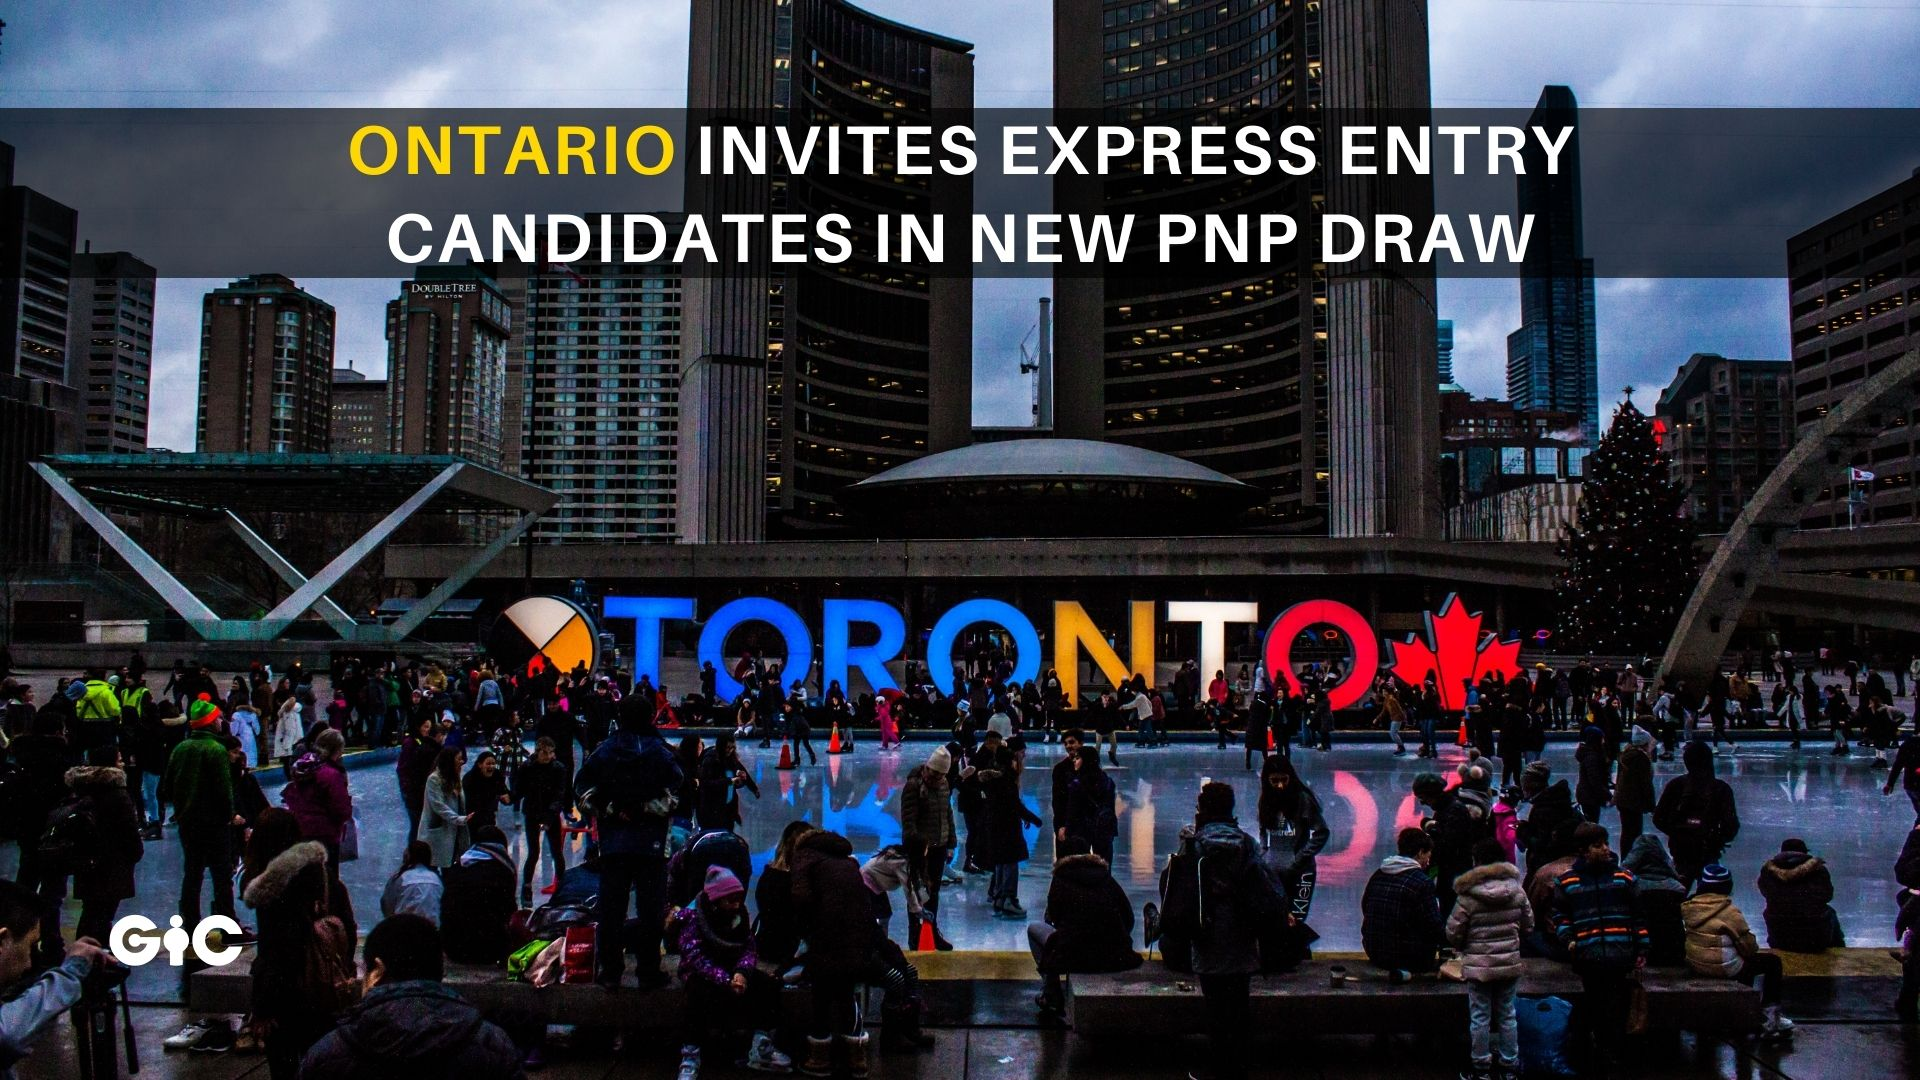 Ontario invites Express Entry candidates in new PNP draw